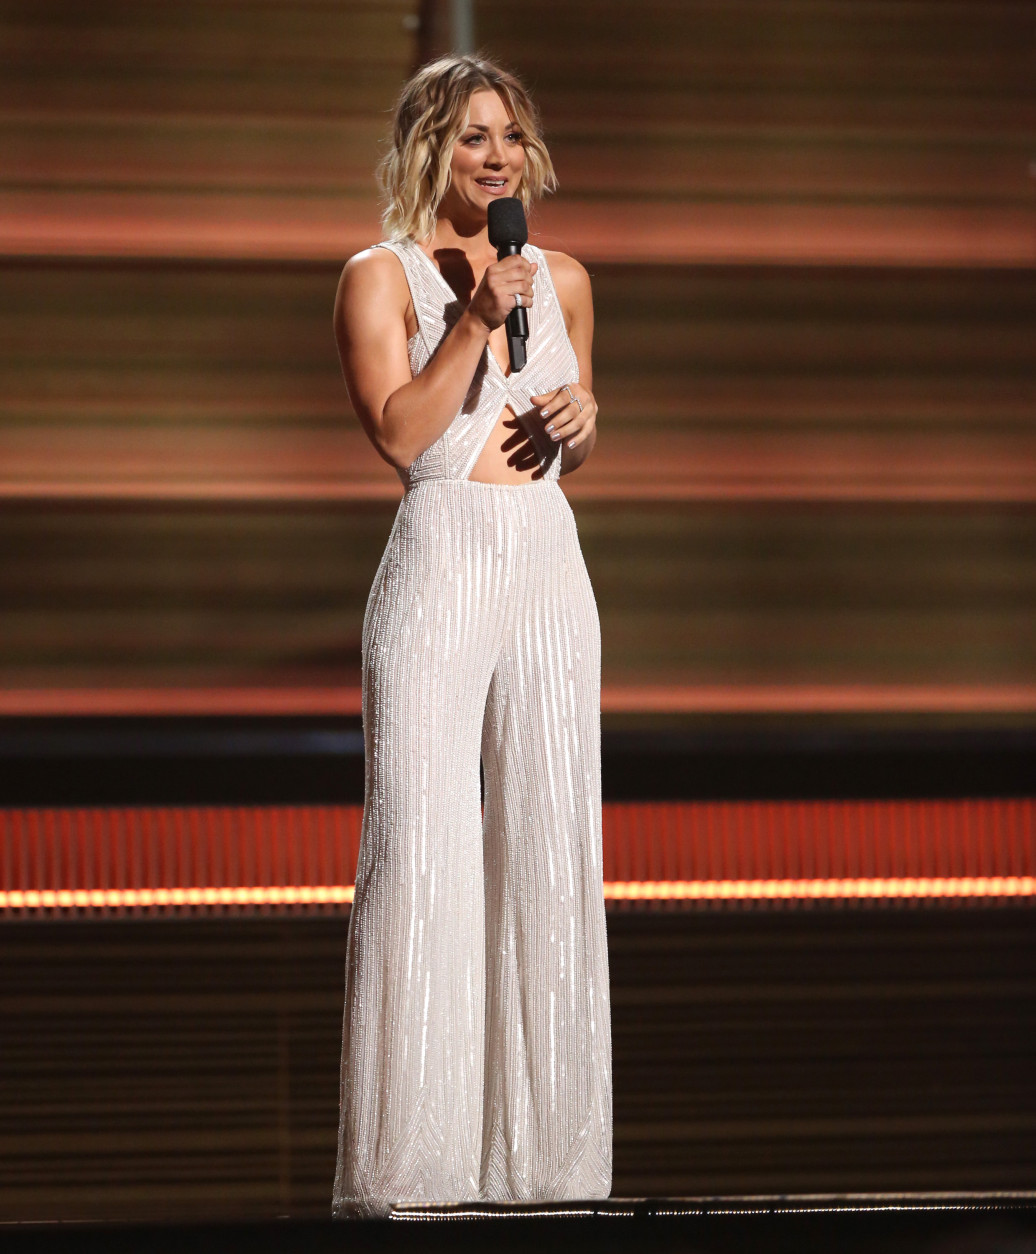 Kaley Cuoco introduces a performance by Justin Bieber at the 58th annual Grammy Awards on Monday, Feb. 15, 2016, in Los Angeles. (Photo by Matt Sayles/Invision/AP)